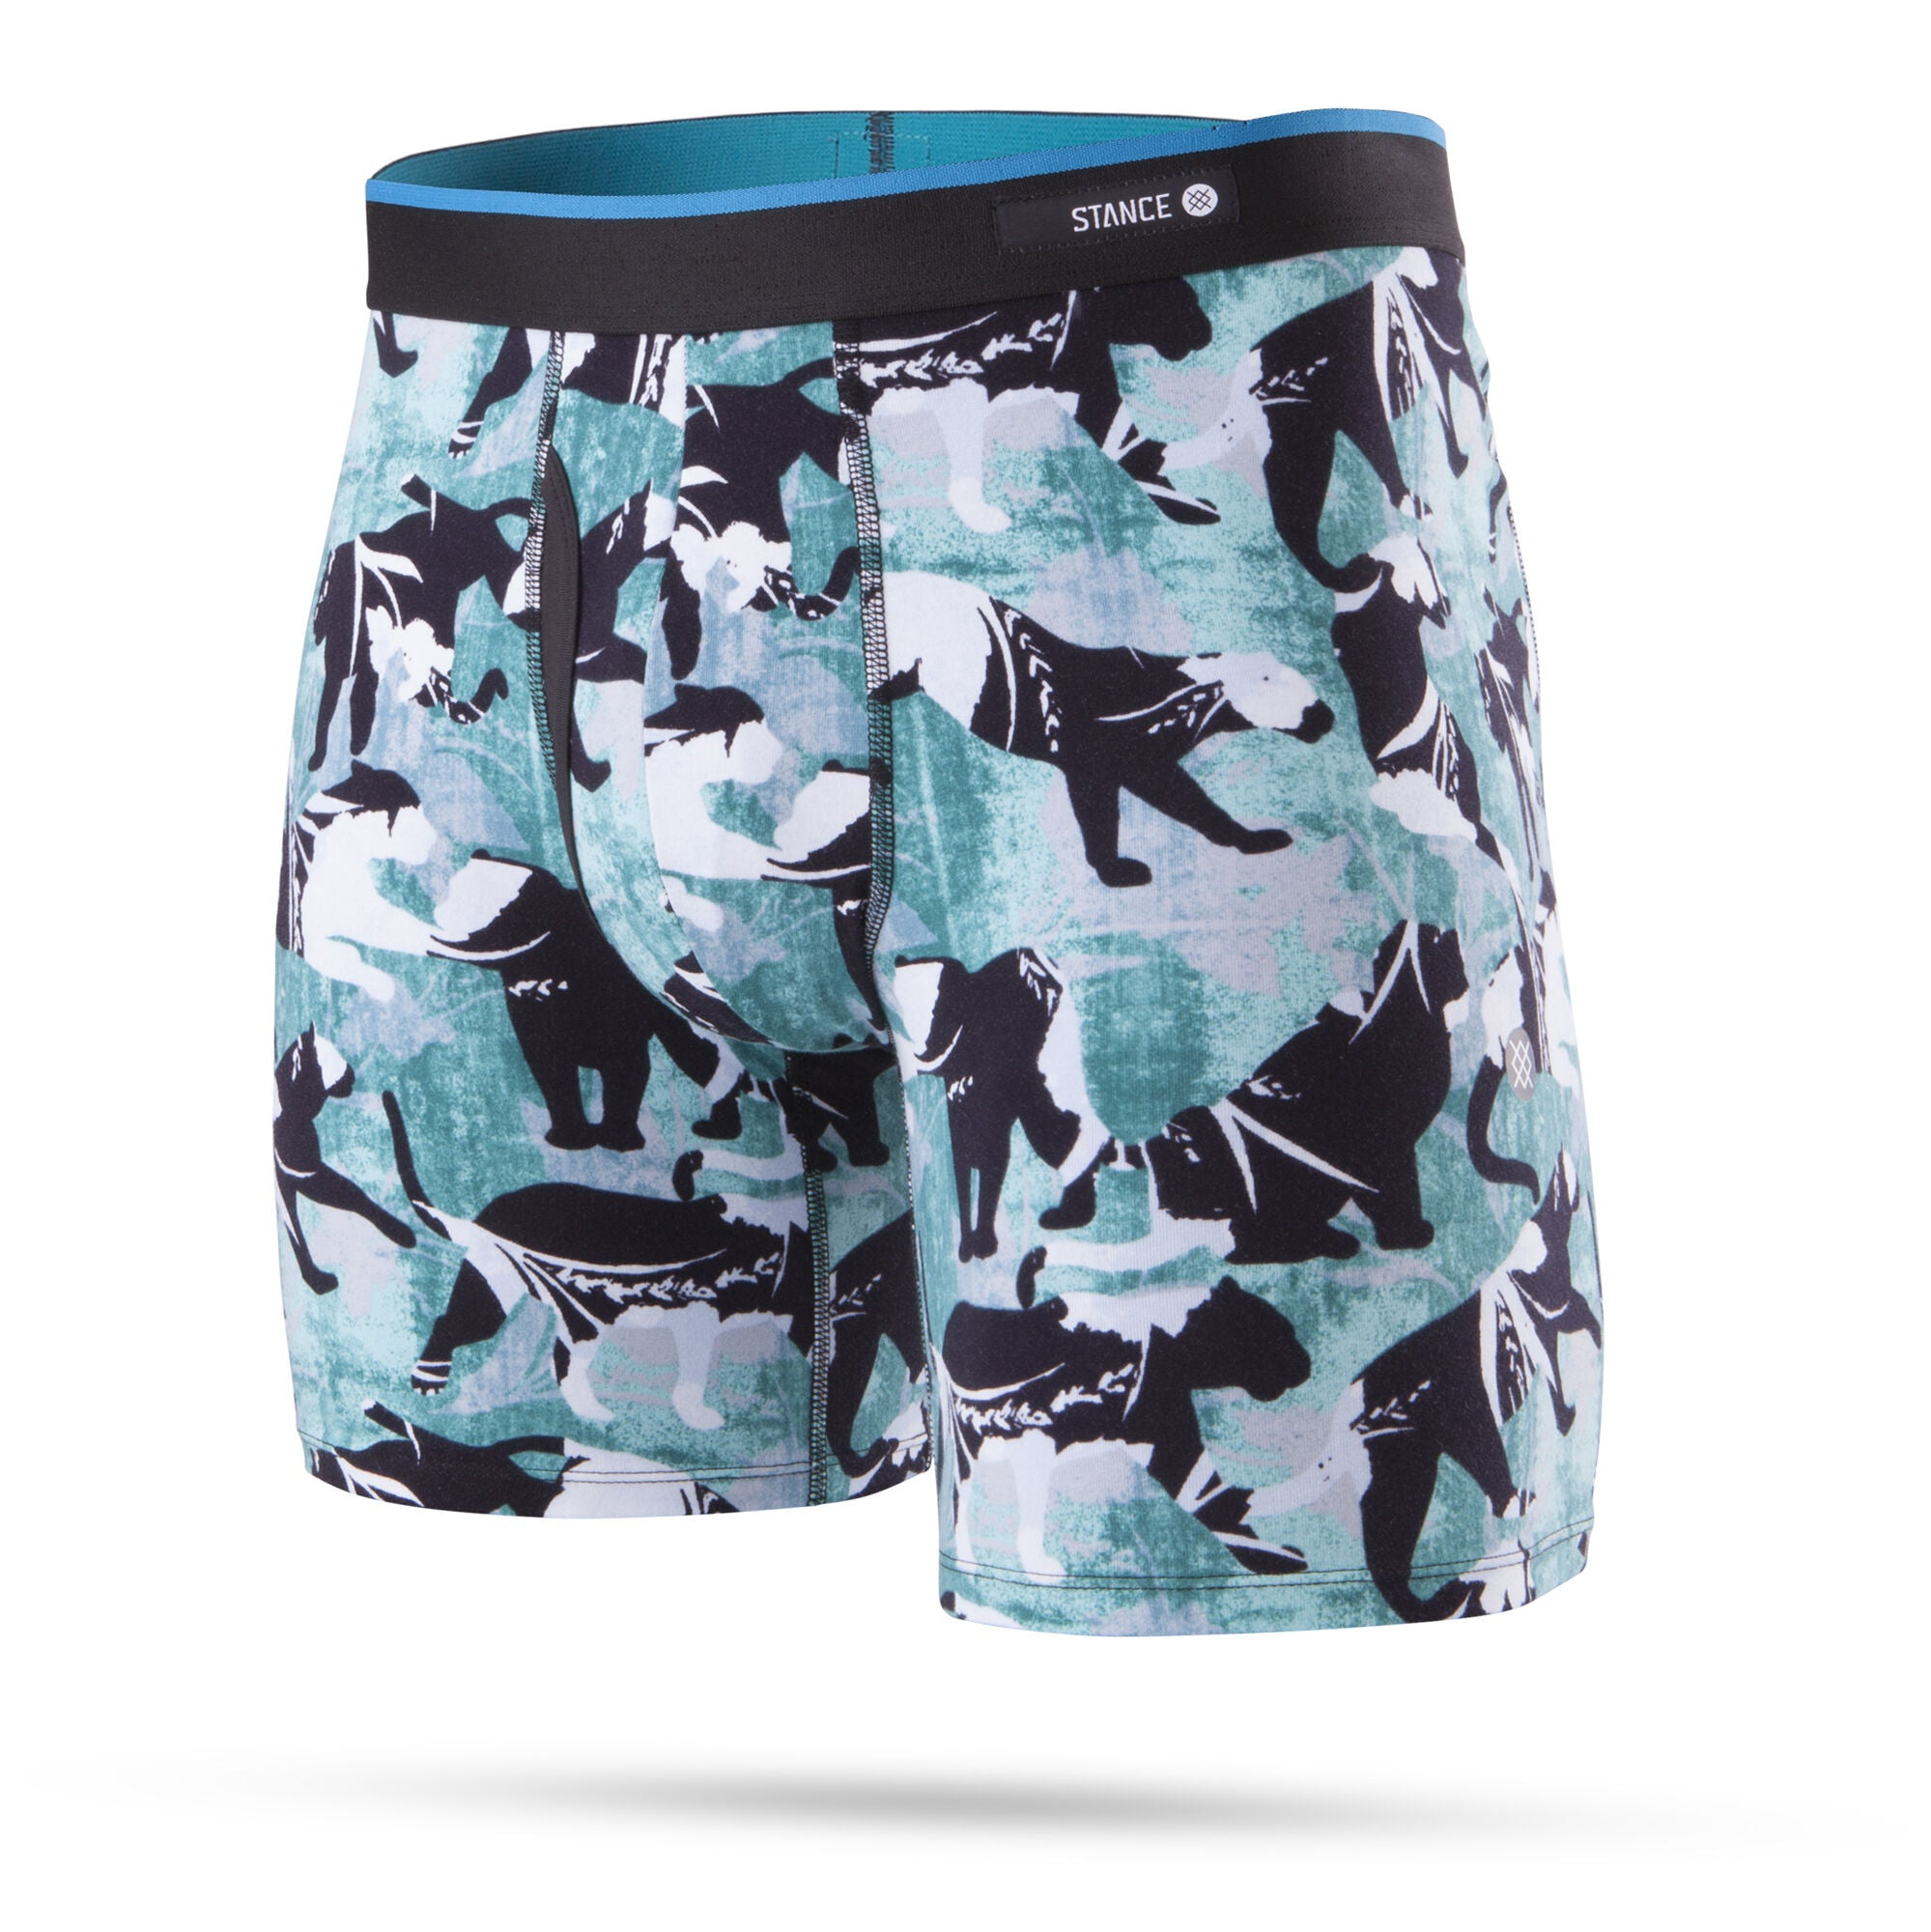 STANCE PANTHERS - The Store Stuff